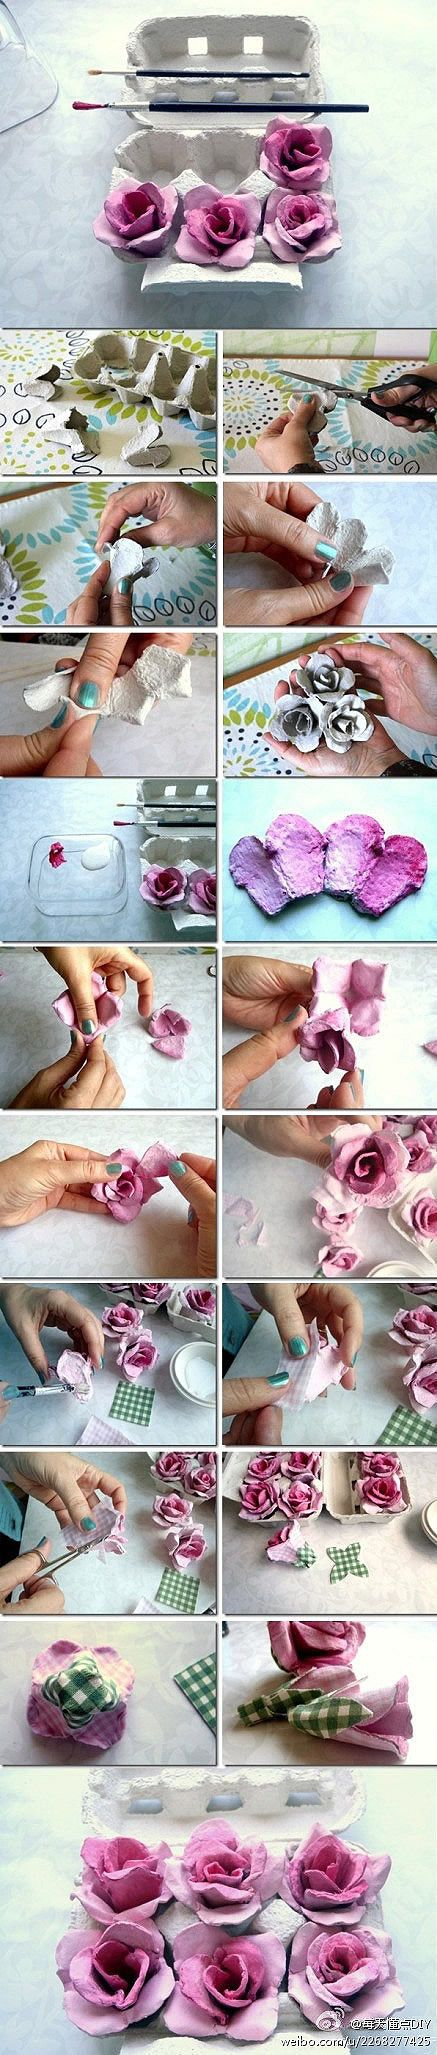 These egg carton roses are so cute and are moving to the top of my pinned flower making crafts. I just need to start buying eggs in bulk ie not from the corner store where I can buy 1, 2 or 3 eggs separately that are given to me in a small plastic bag.